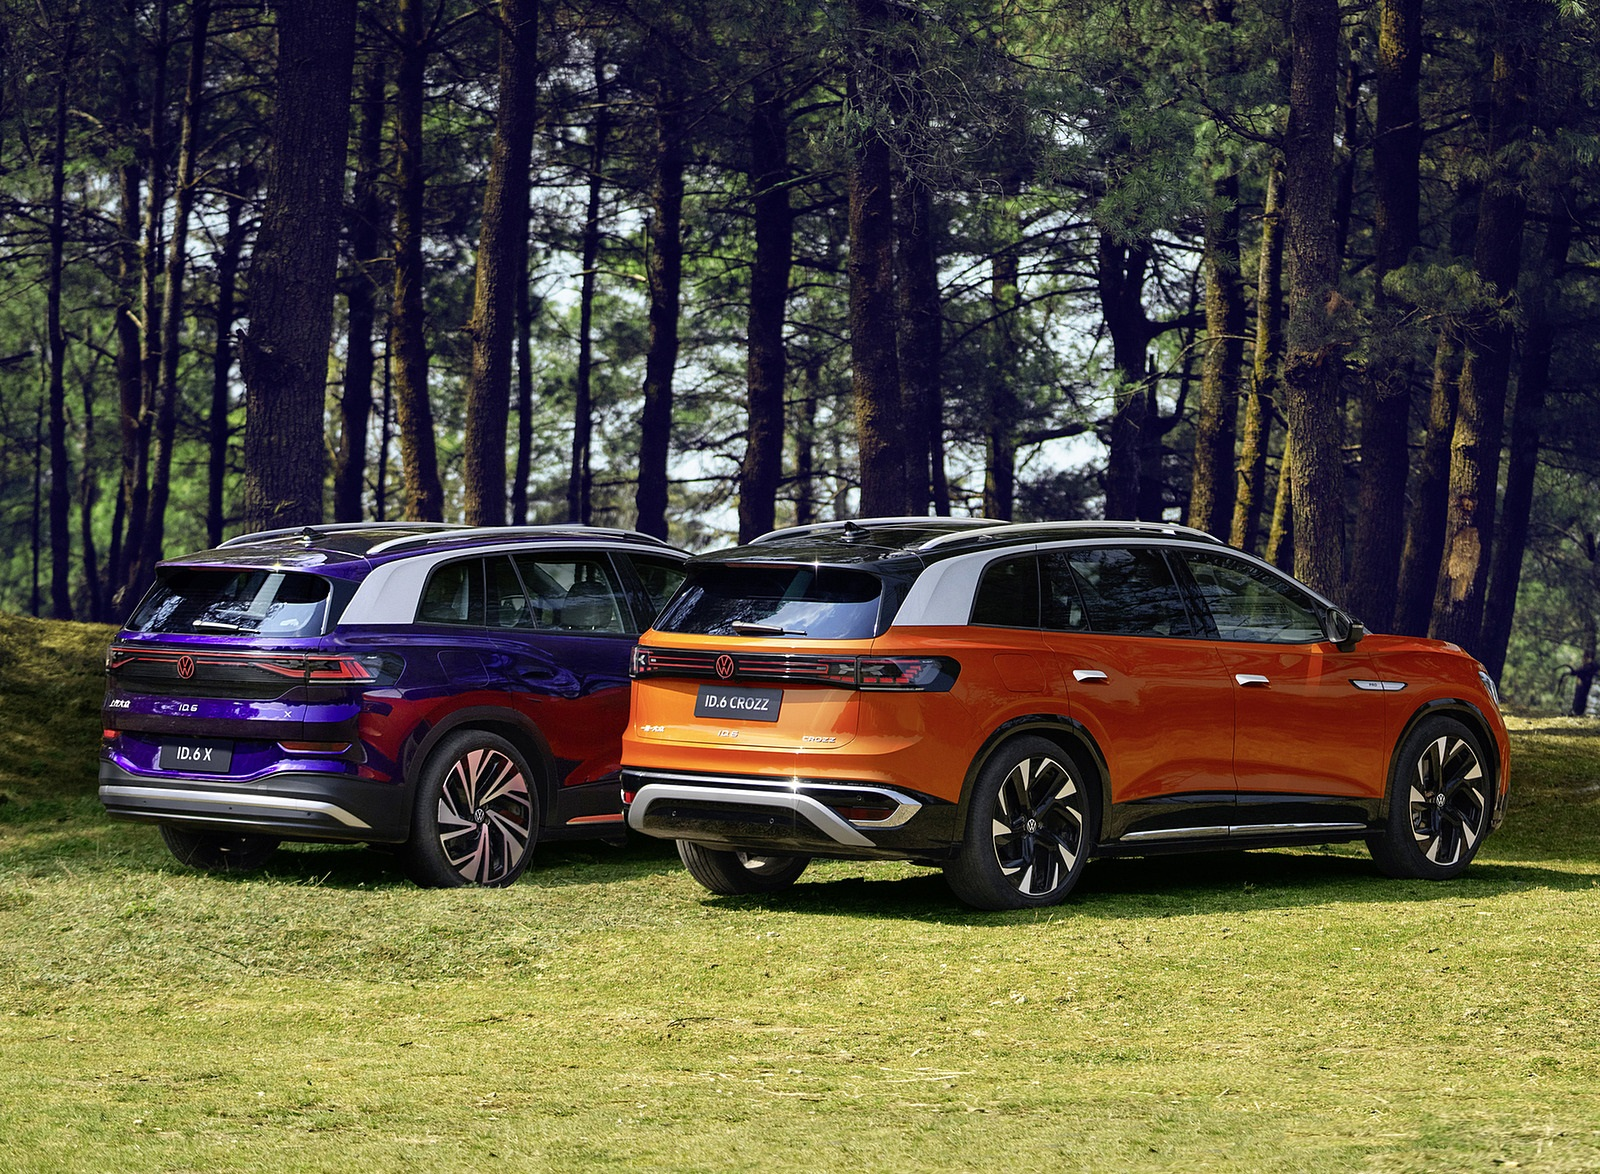 2022 Volkswagen ID.6 (Chinese-Spec) CROZZ and ID.6 X Wallpapers  (2)